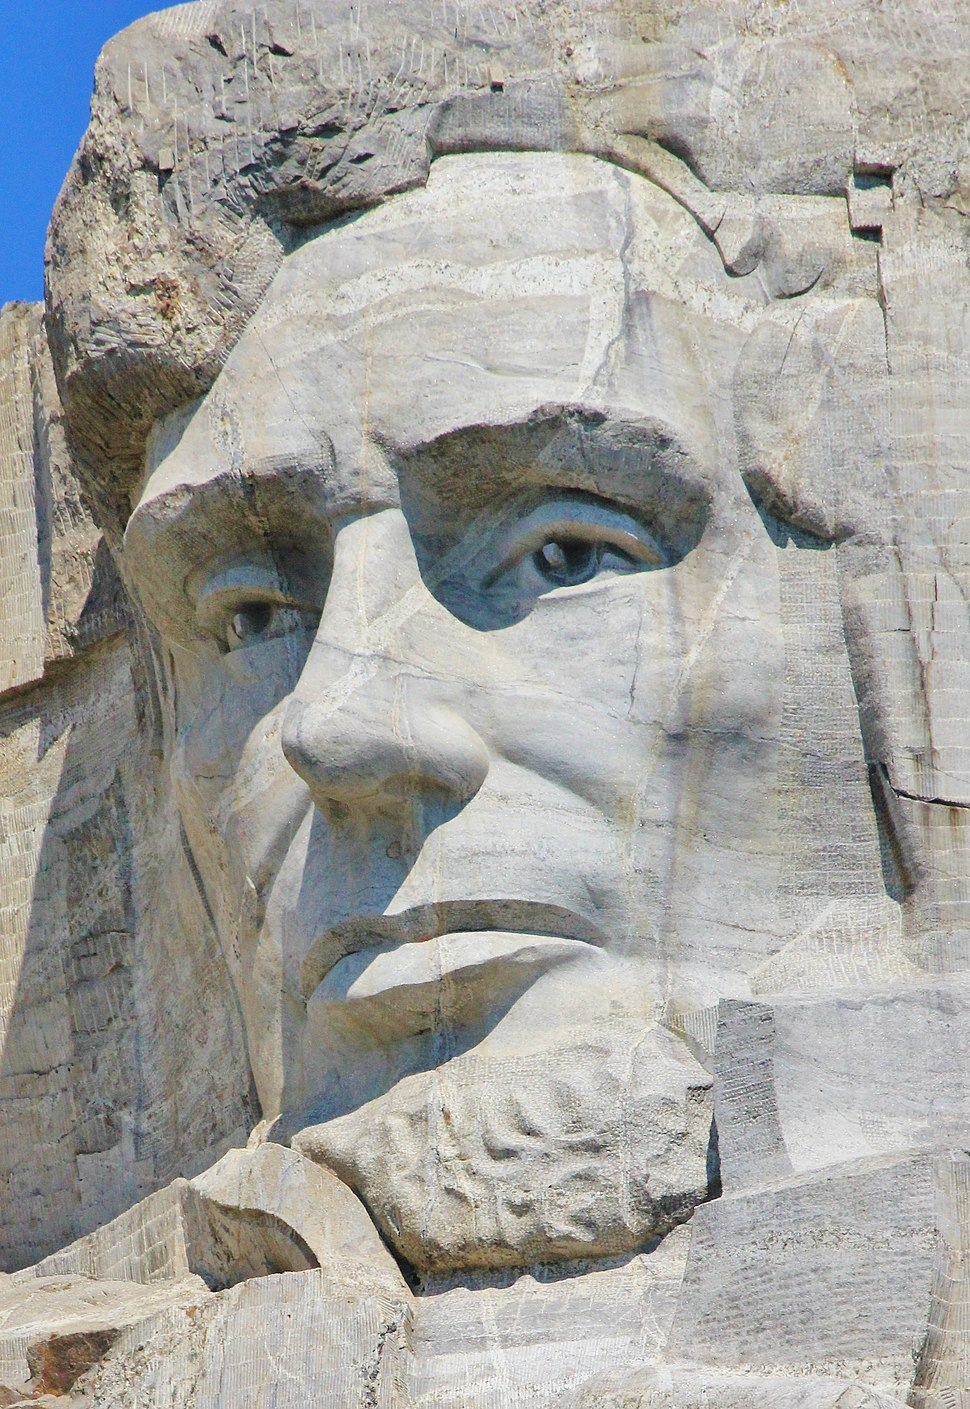 Head of Abraham Lincoln at Mount Rushmore